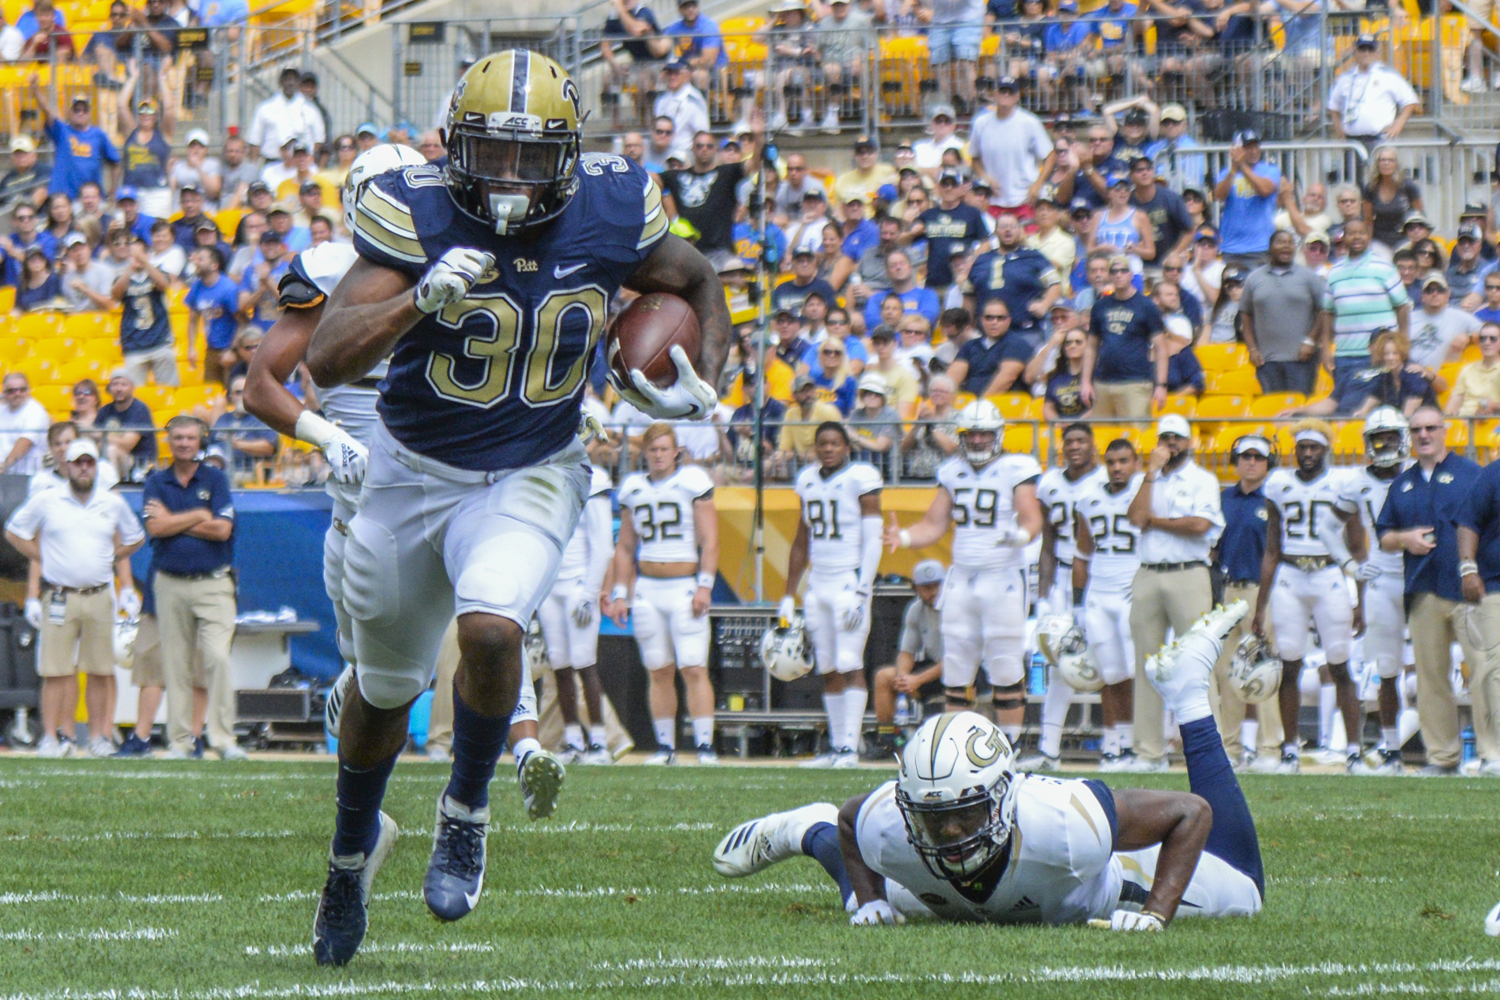 Former running back Qadree Ollison will be the only Pitt player participating in the NFL Combine this year.